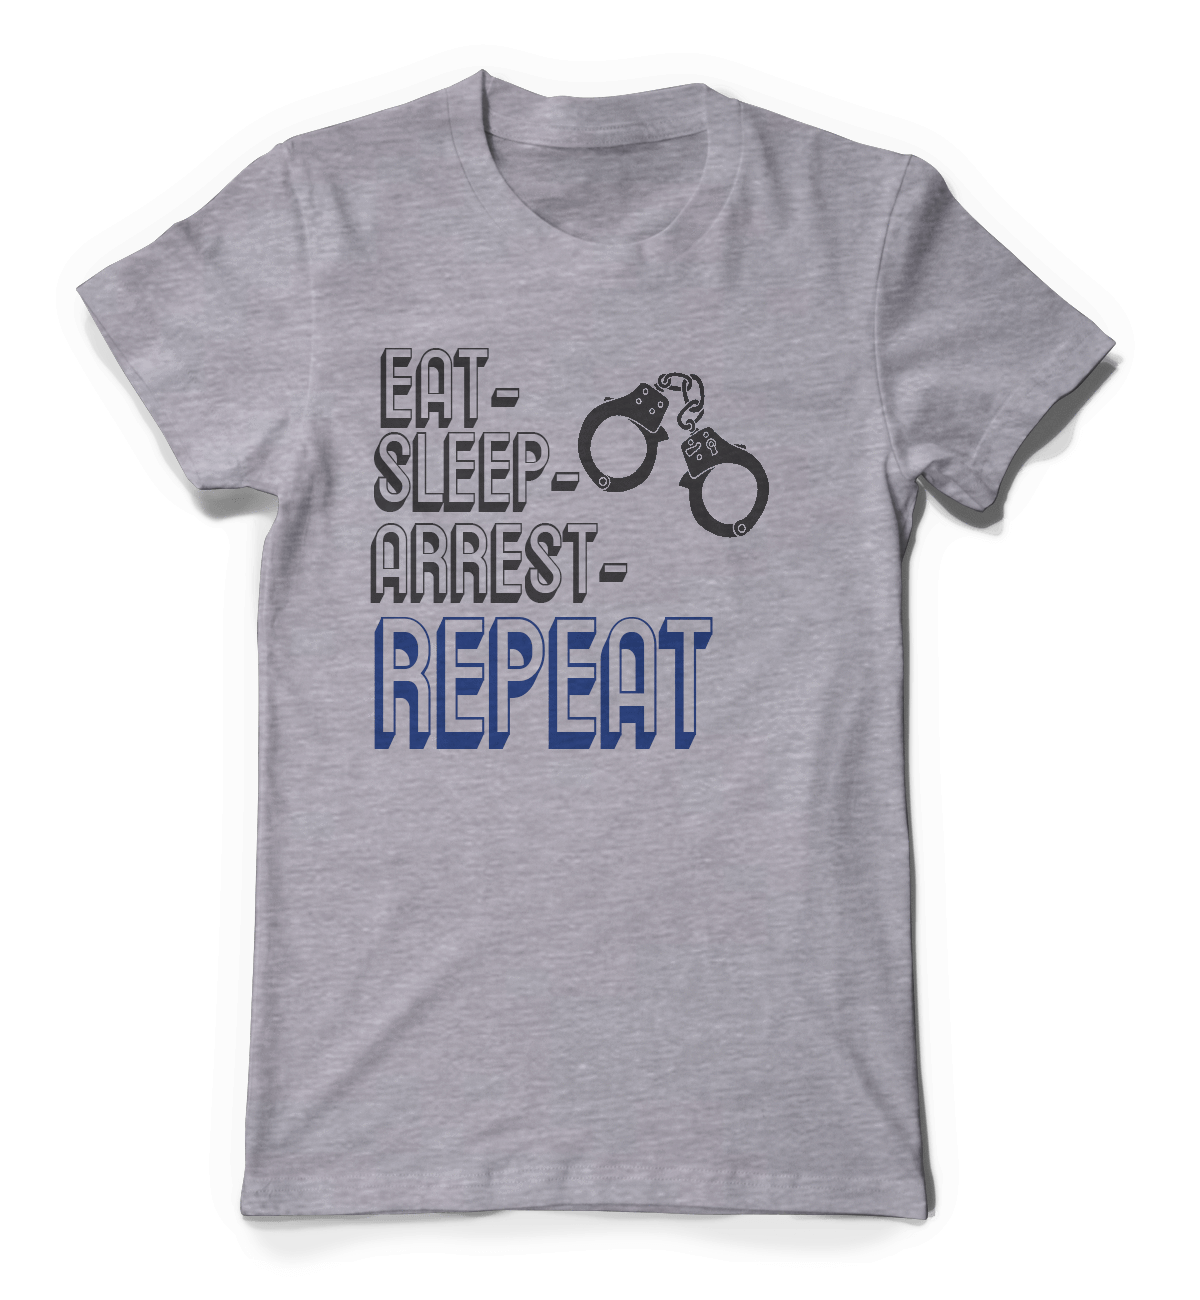 Eat Sleep Arrest Repeat Police Support Athletic Shirt Barbells And